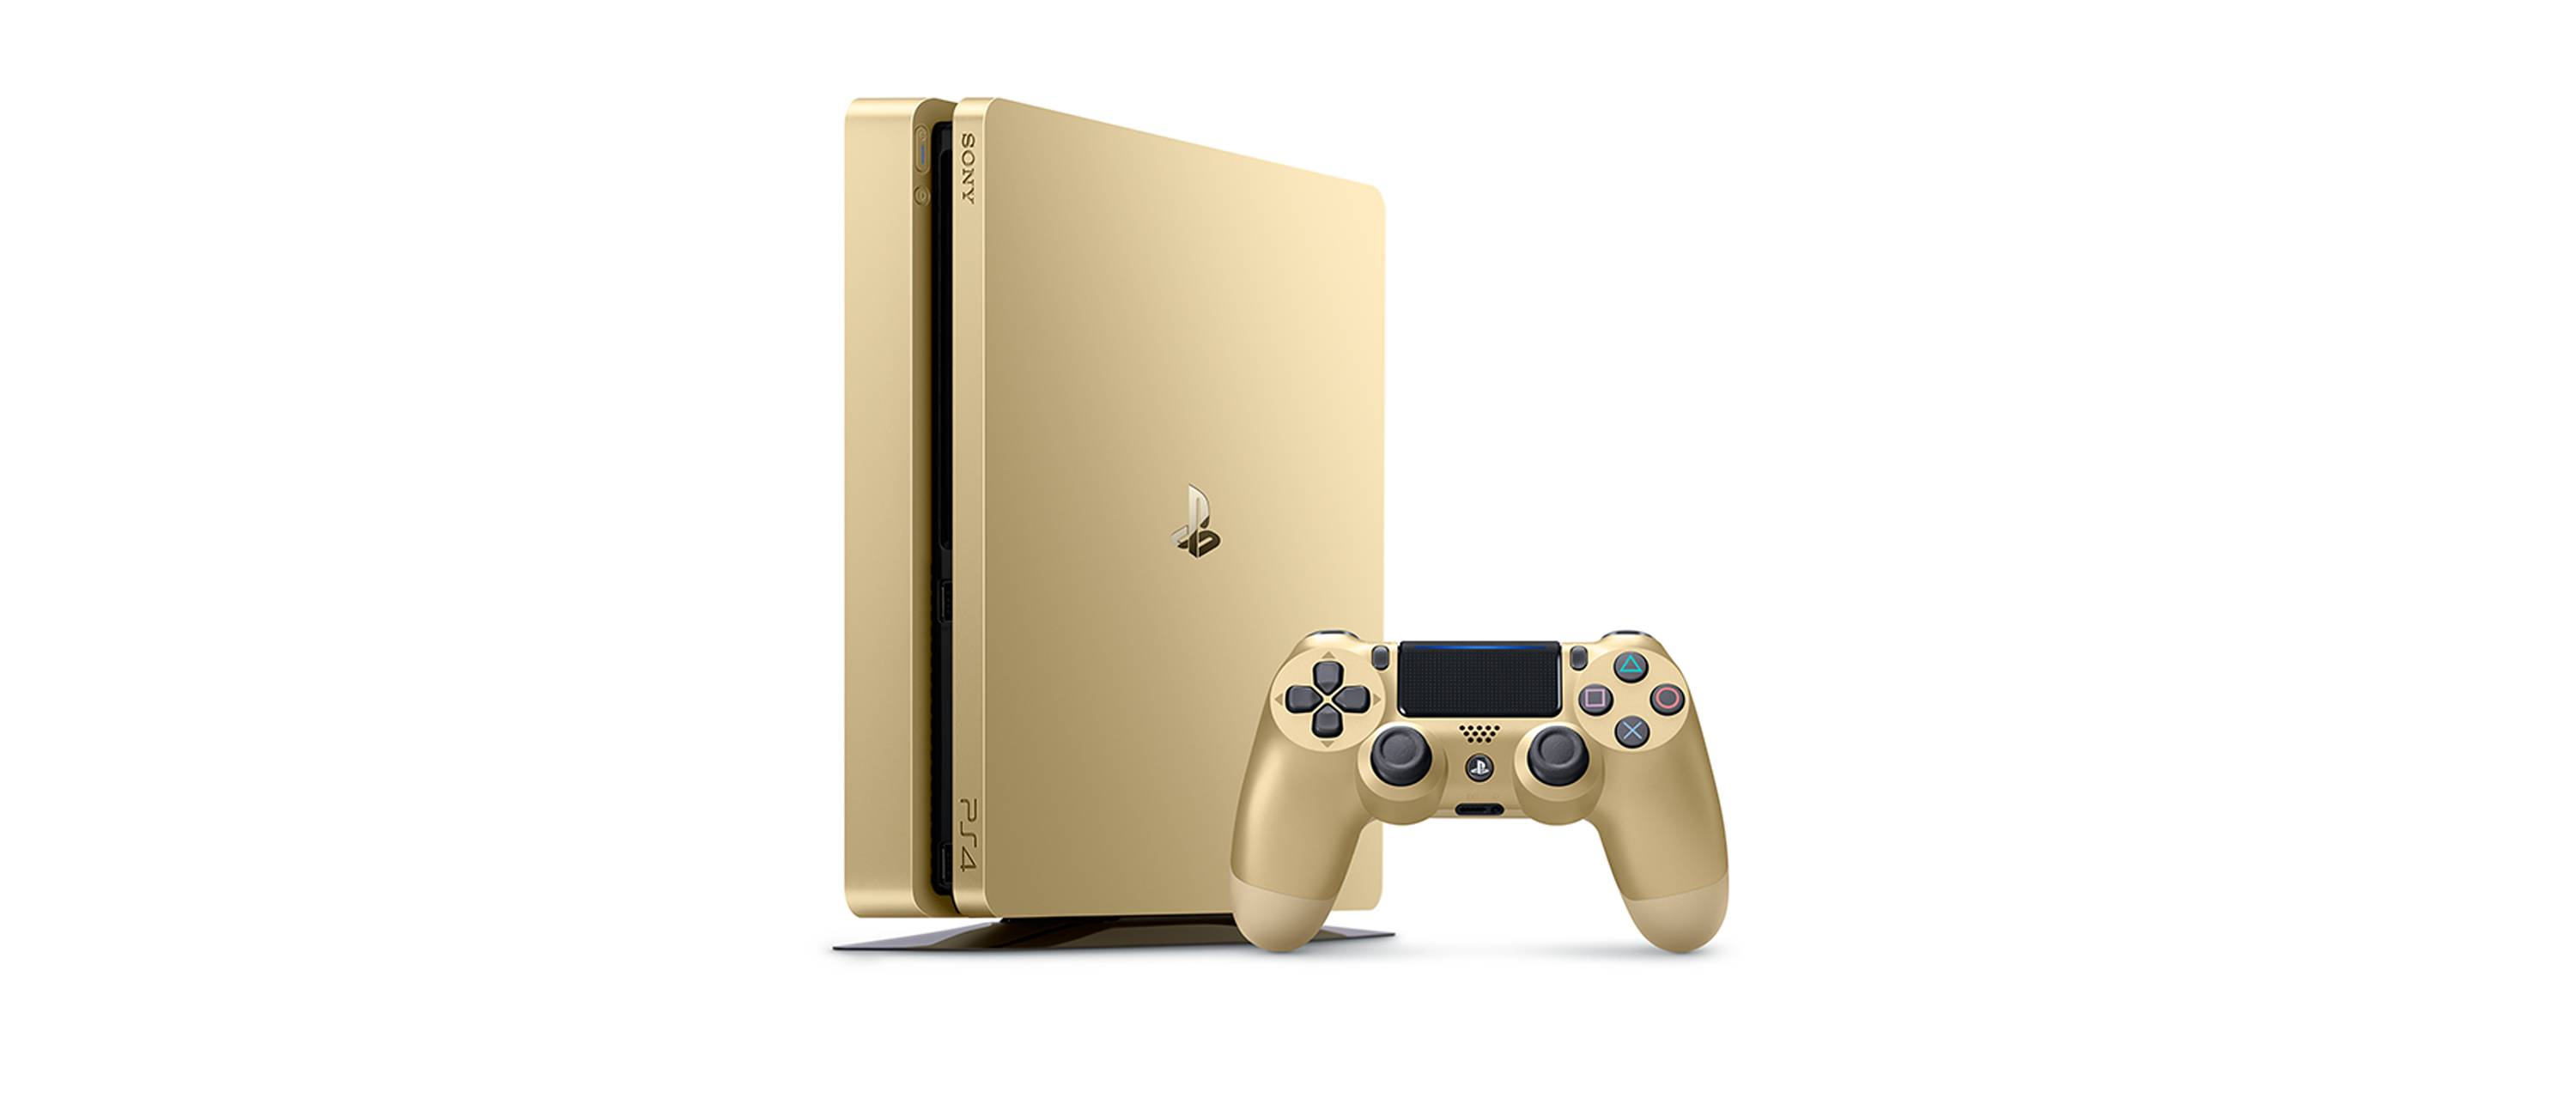 Playstation 4 1tb limited edition gold console 3002191 ps4 - Ps3 limited edition console ...